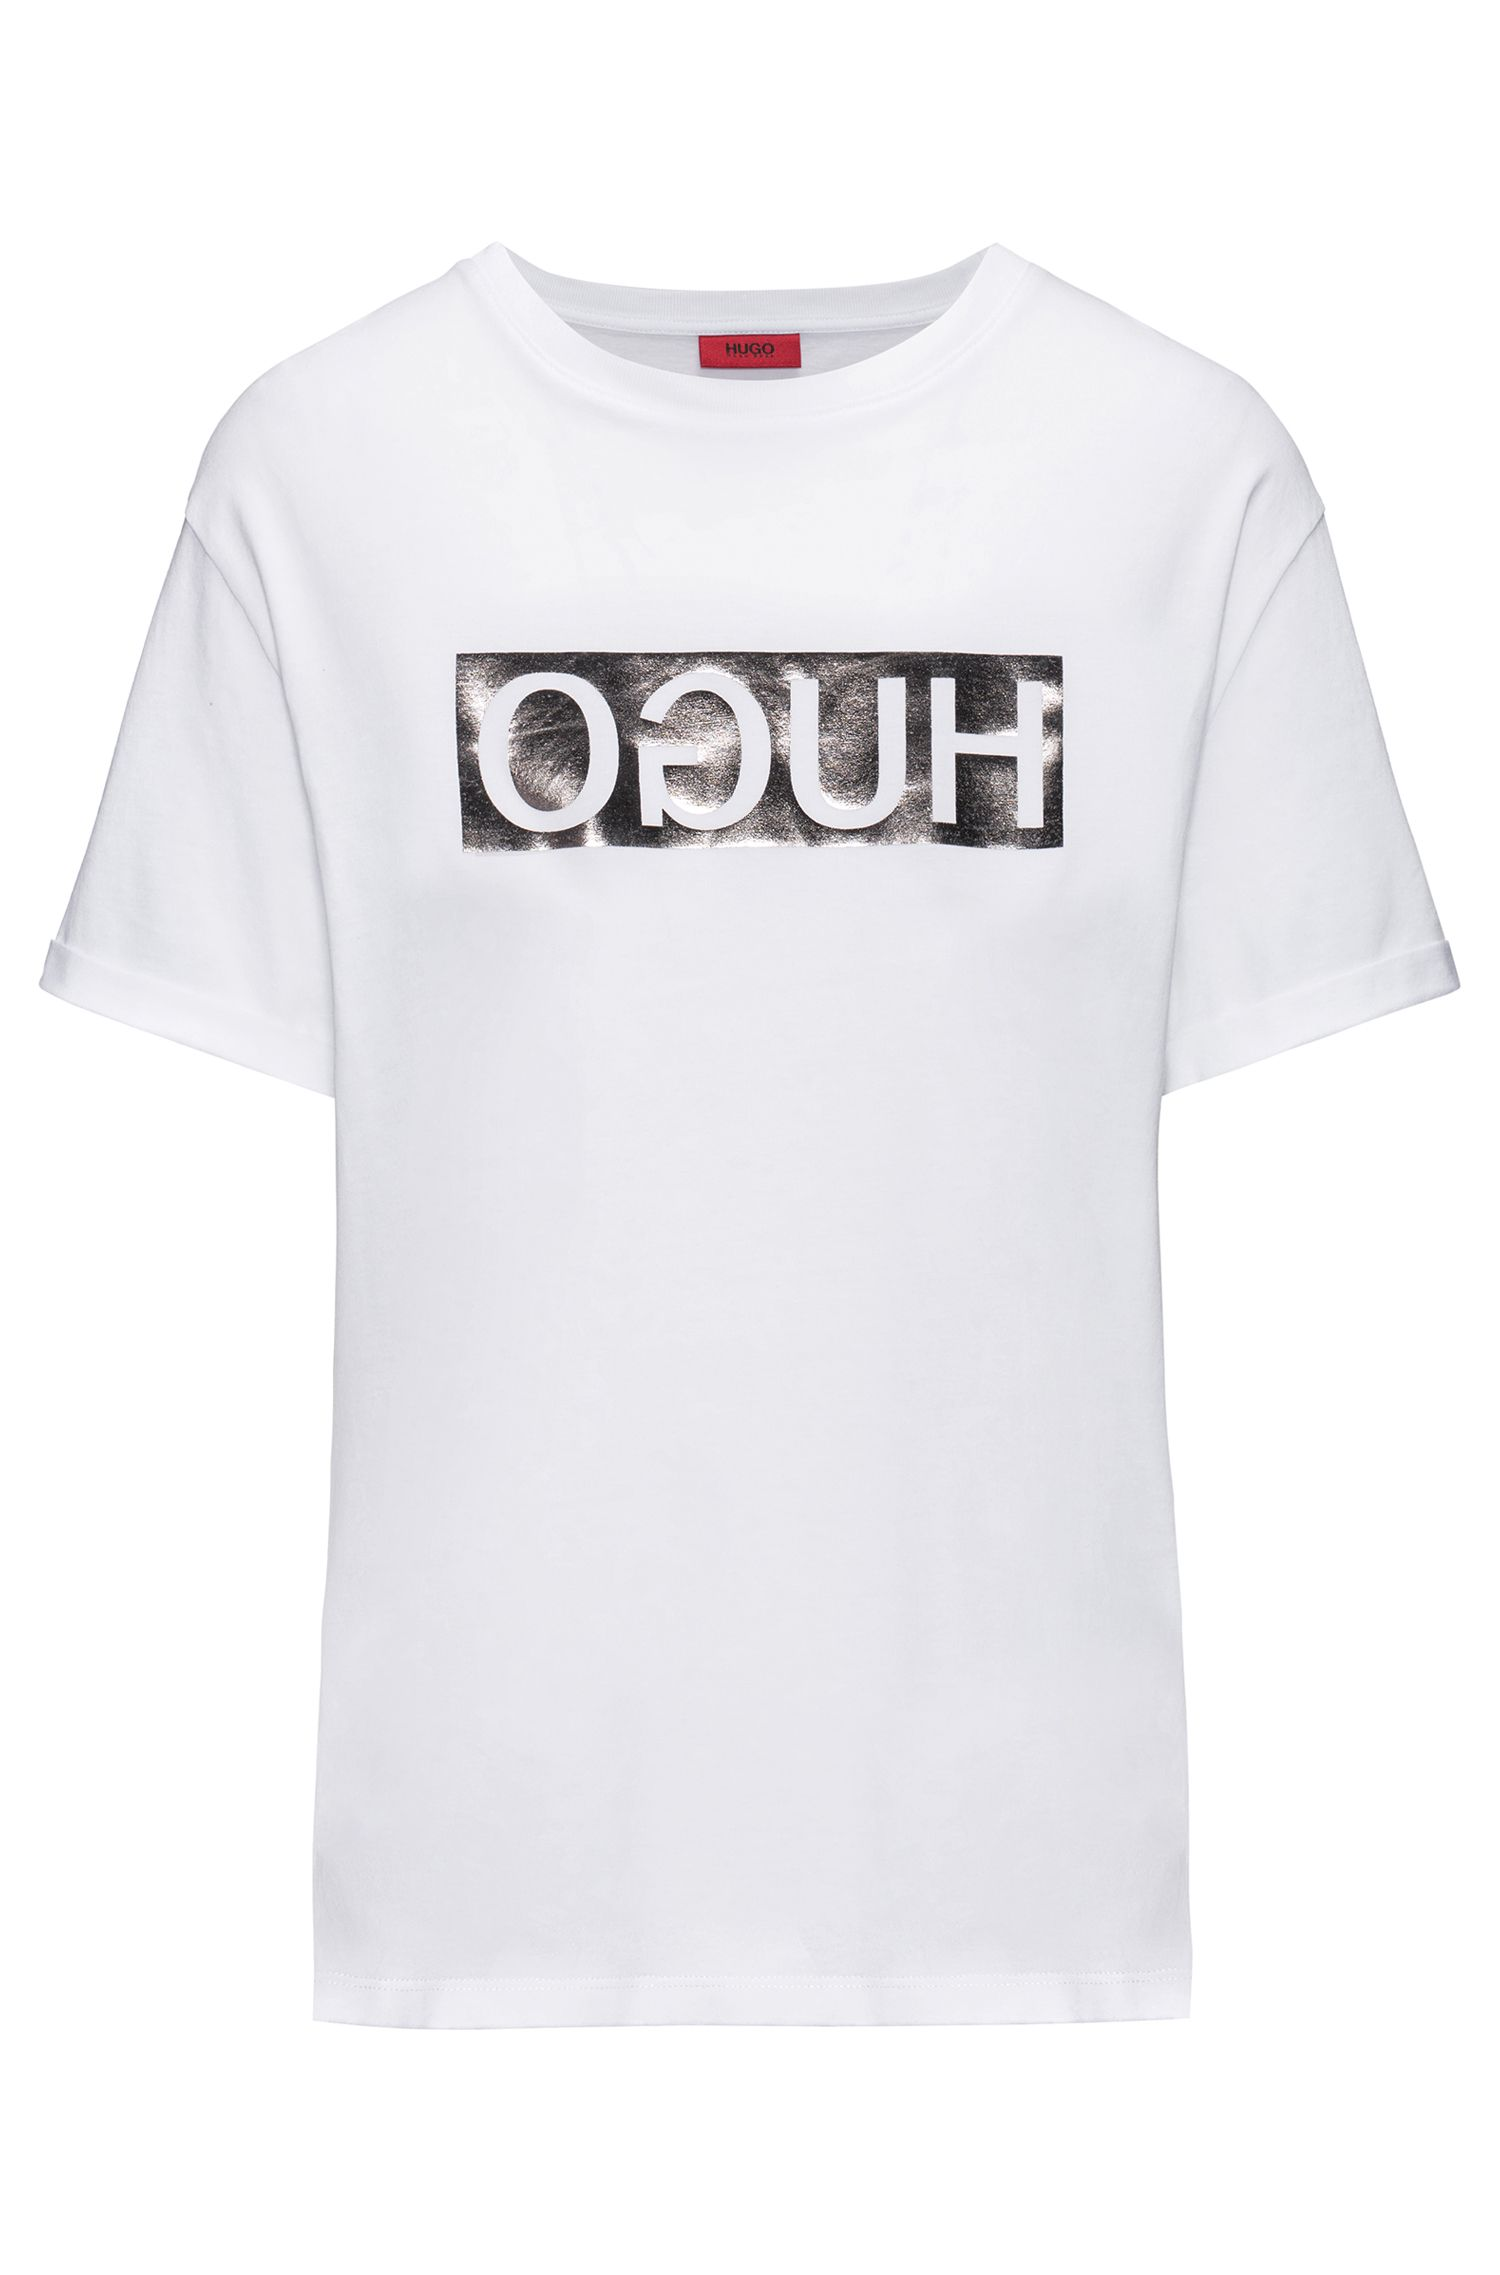 Short-sleeved cotton T-shirt with metallic reversed logo